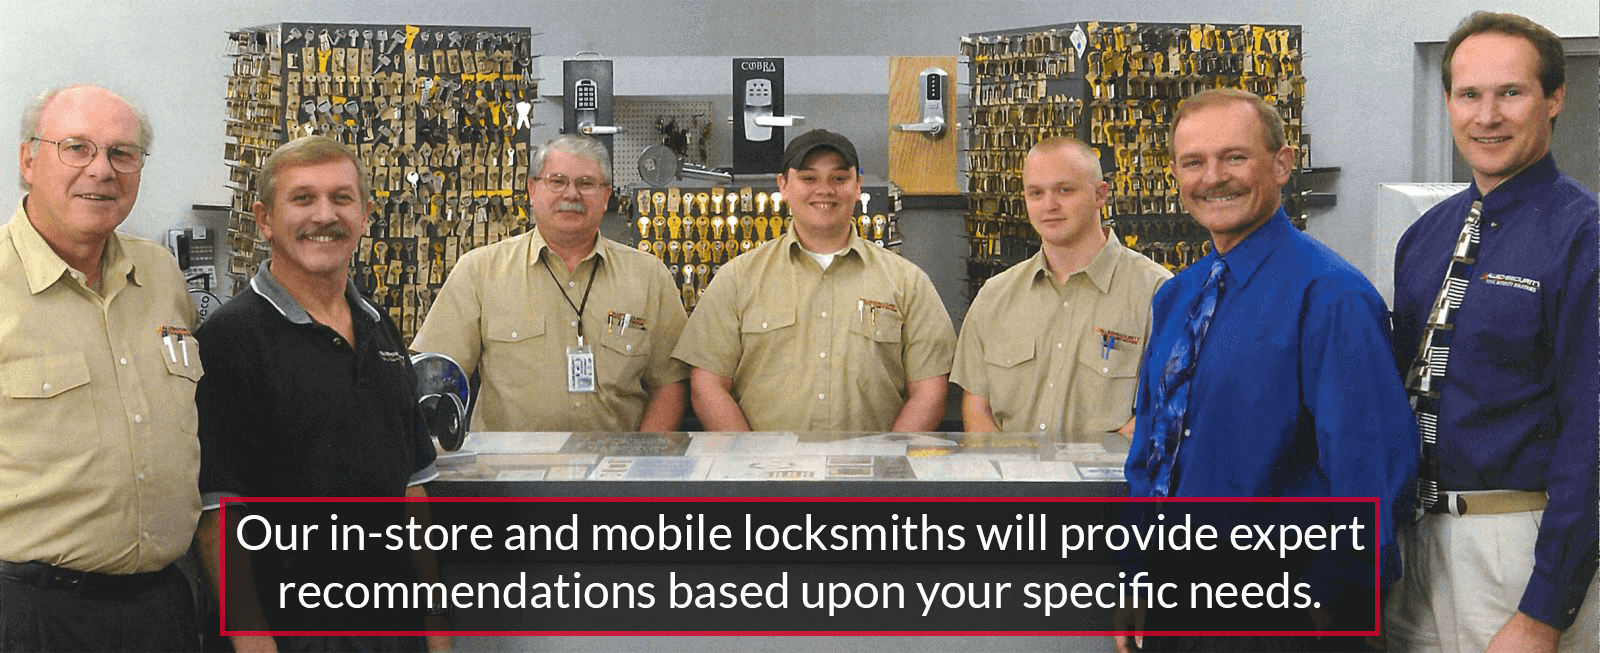 Locksmith Spokane, Portland, Seattle